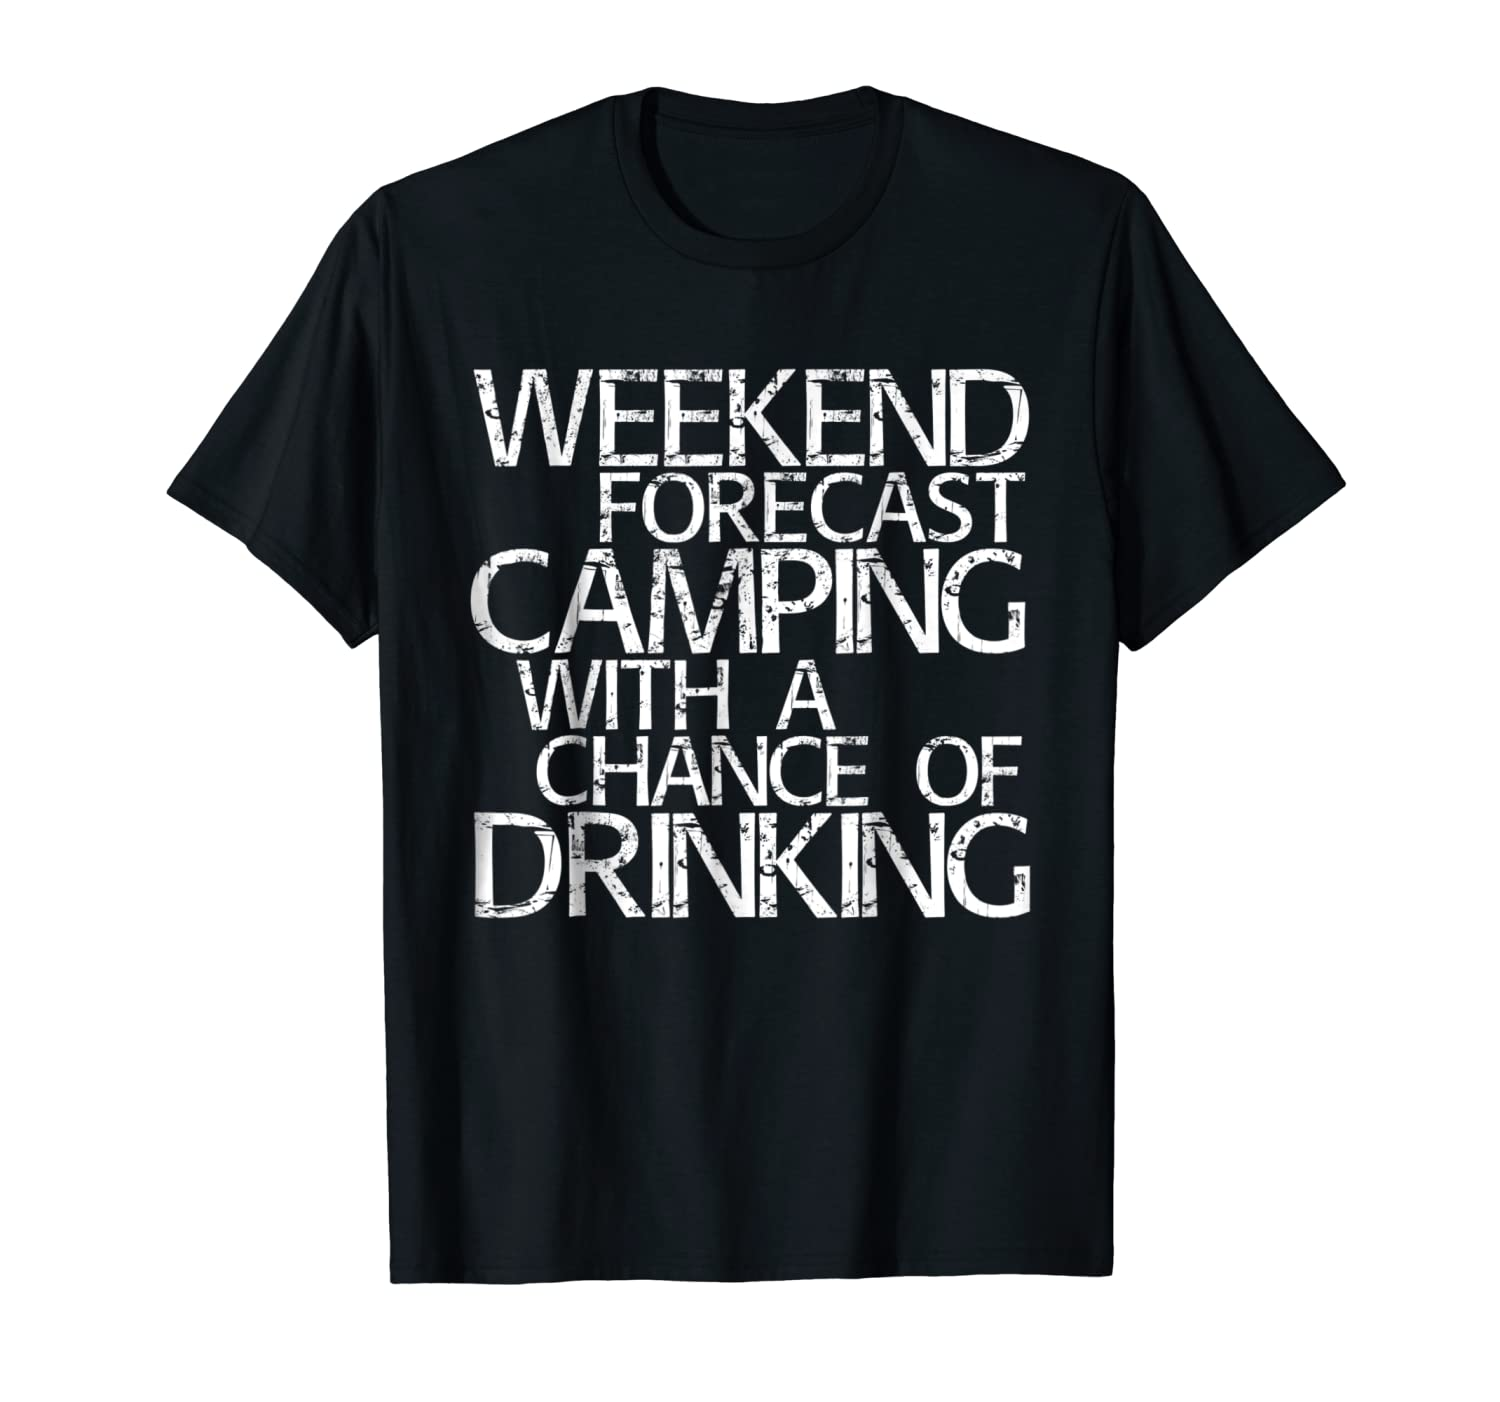 f9417fcc0 Amazon.com: Weekend Forecast Camping With A Chance Of Drinking T-Shirt:  Clothing